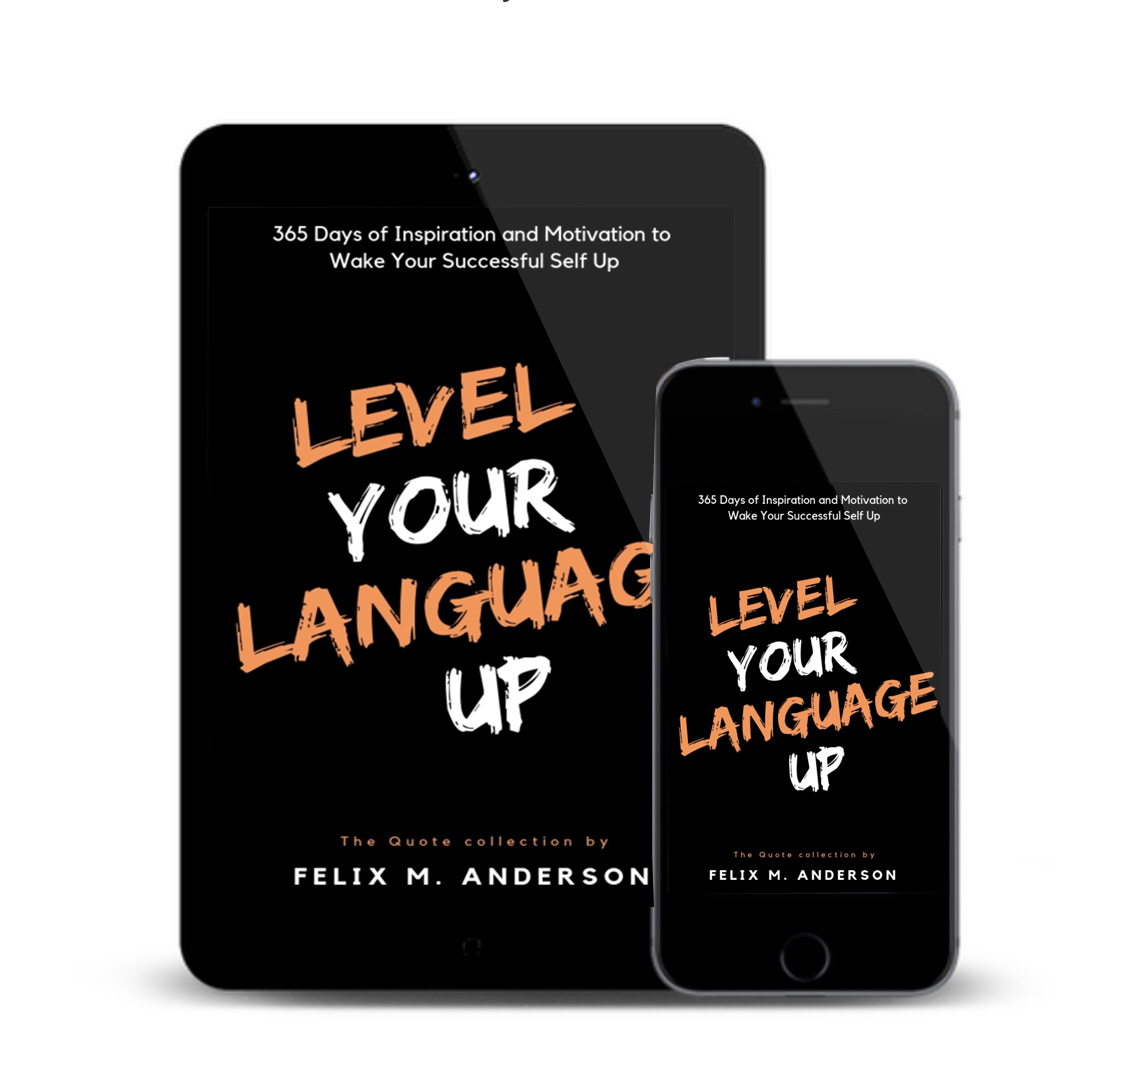 LEVEL YOUR LANGUAGE UP (Volume 1) E-BOOK